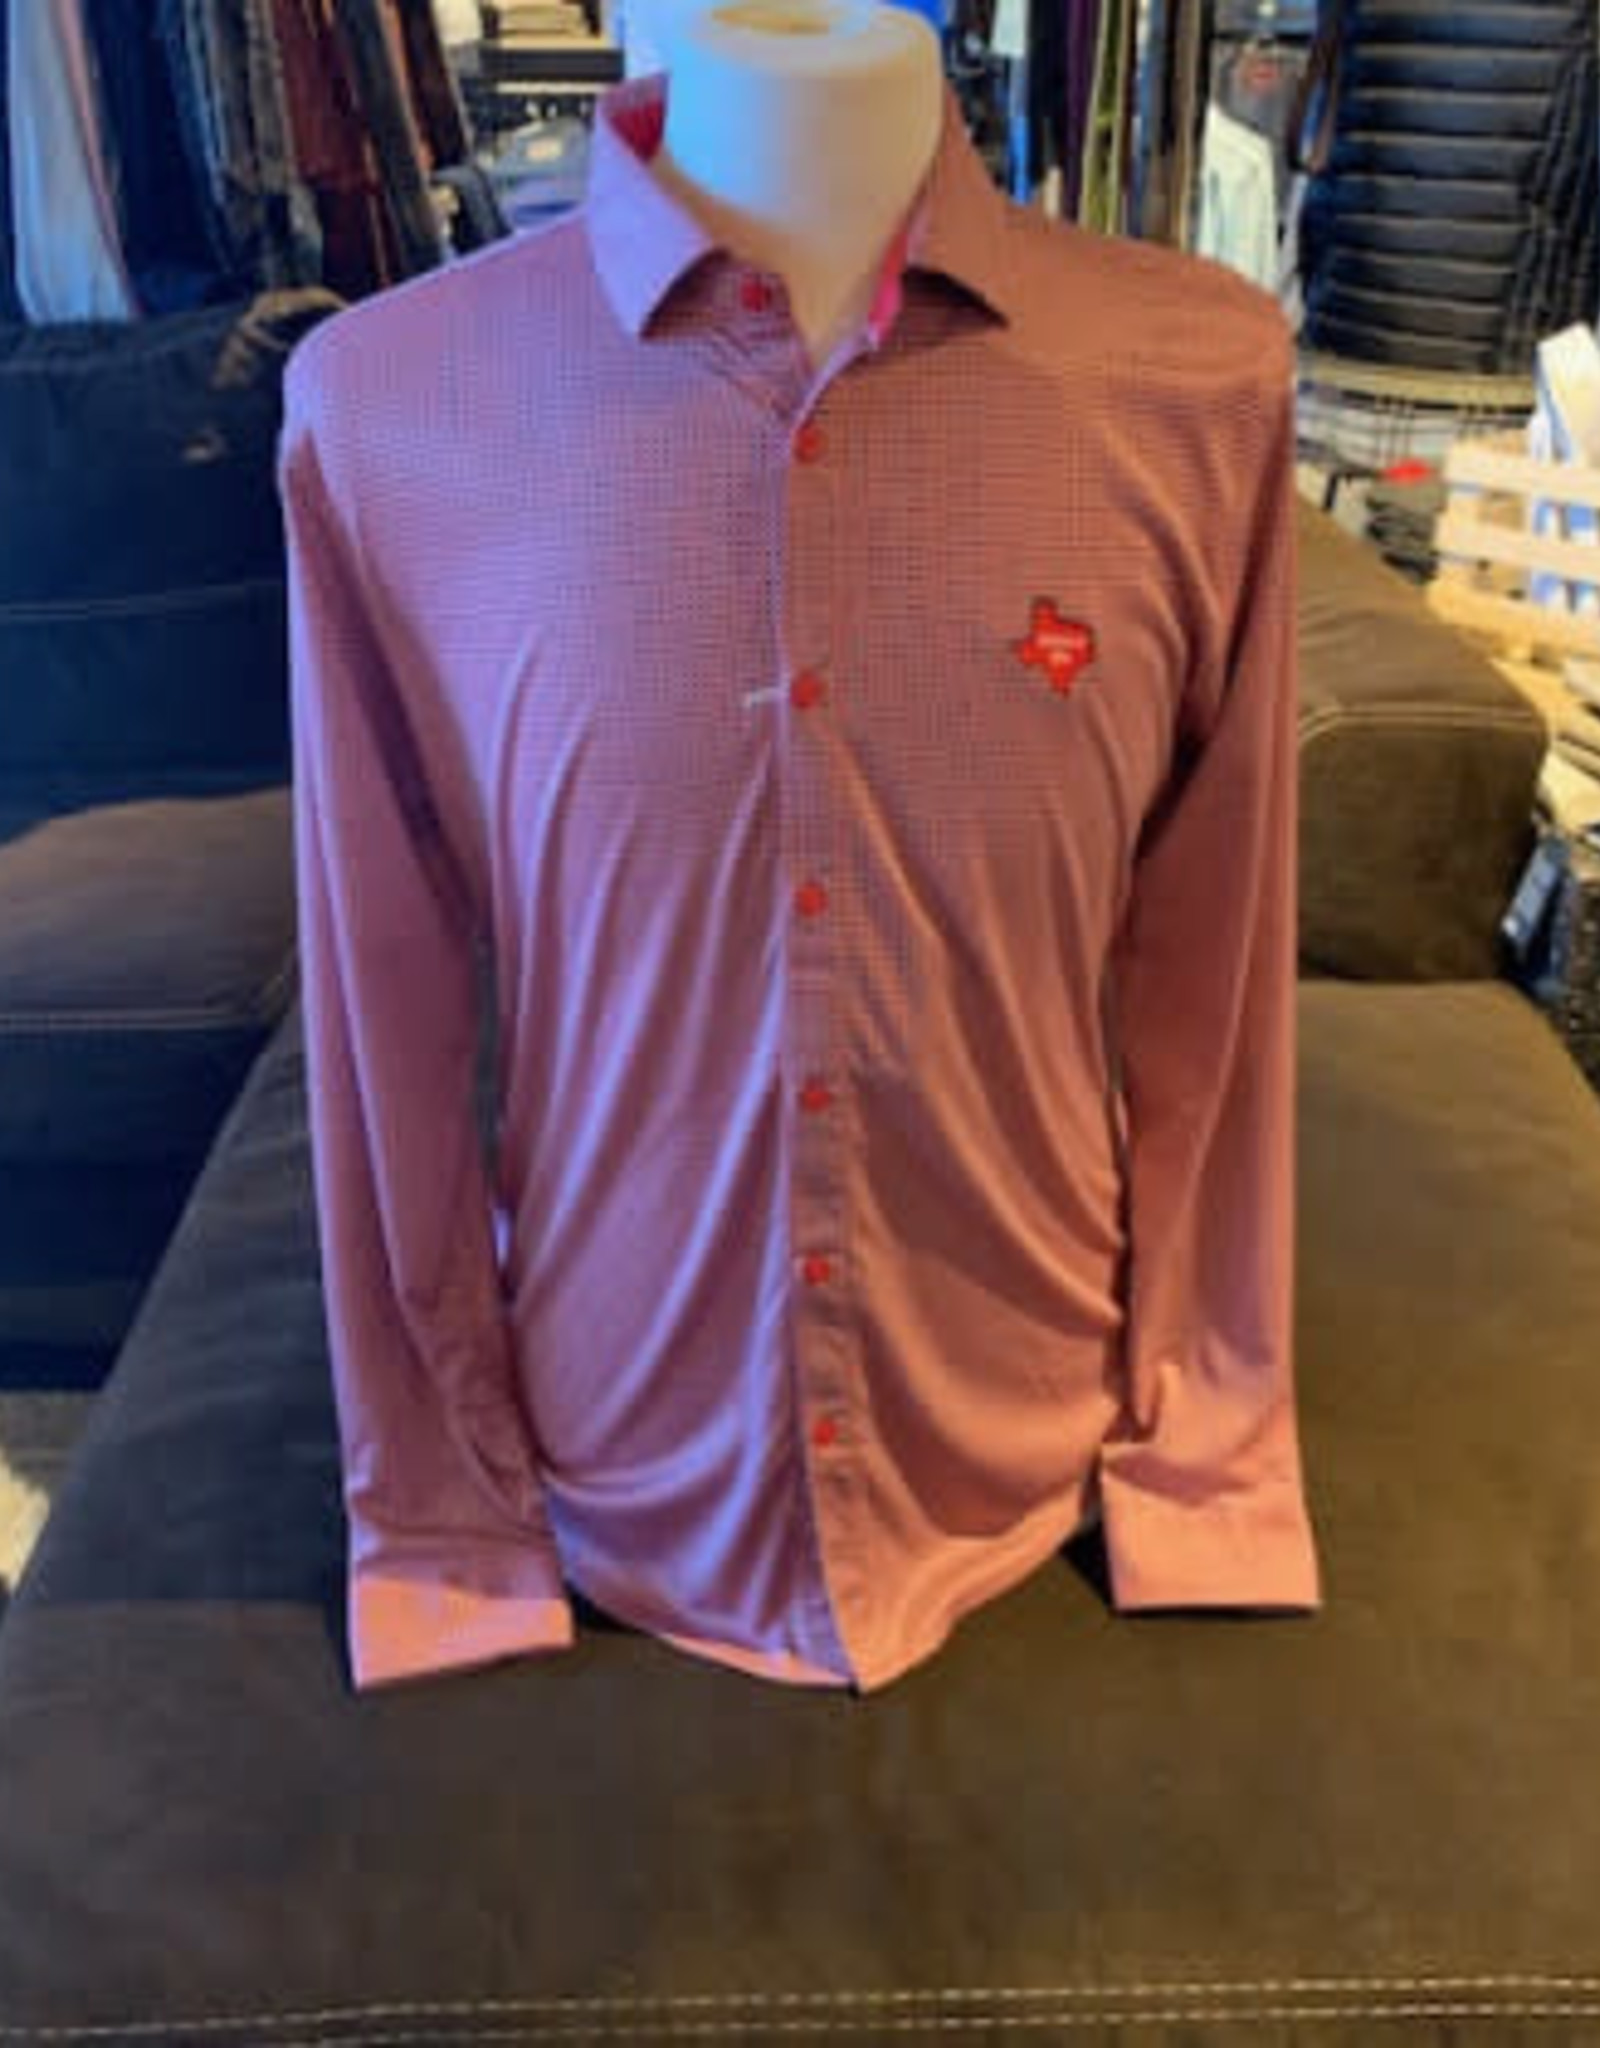 Stag GameDay L/S Red/Black/White Gingham Texas/Wreck Em